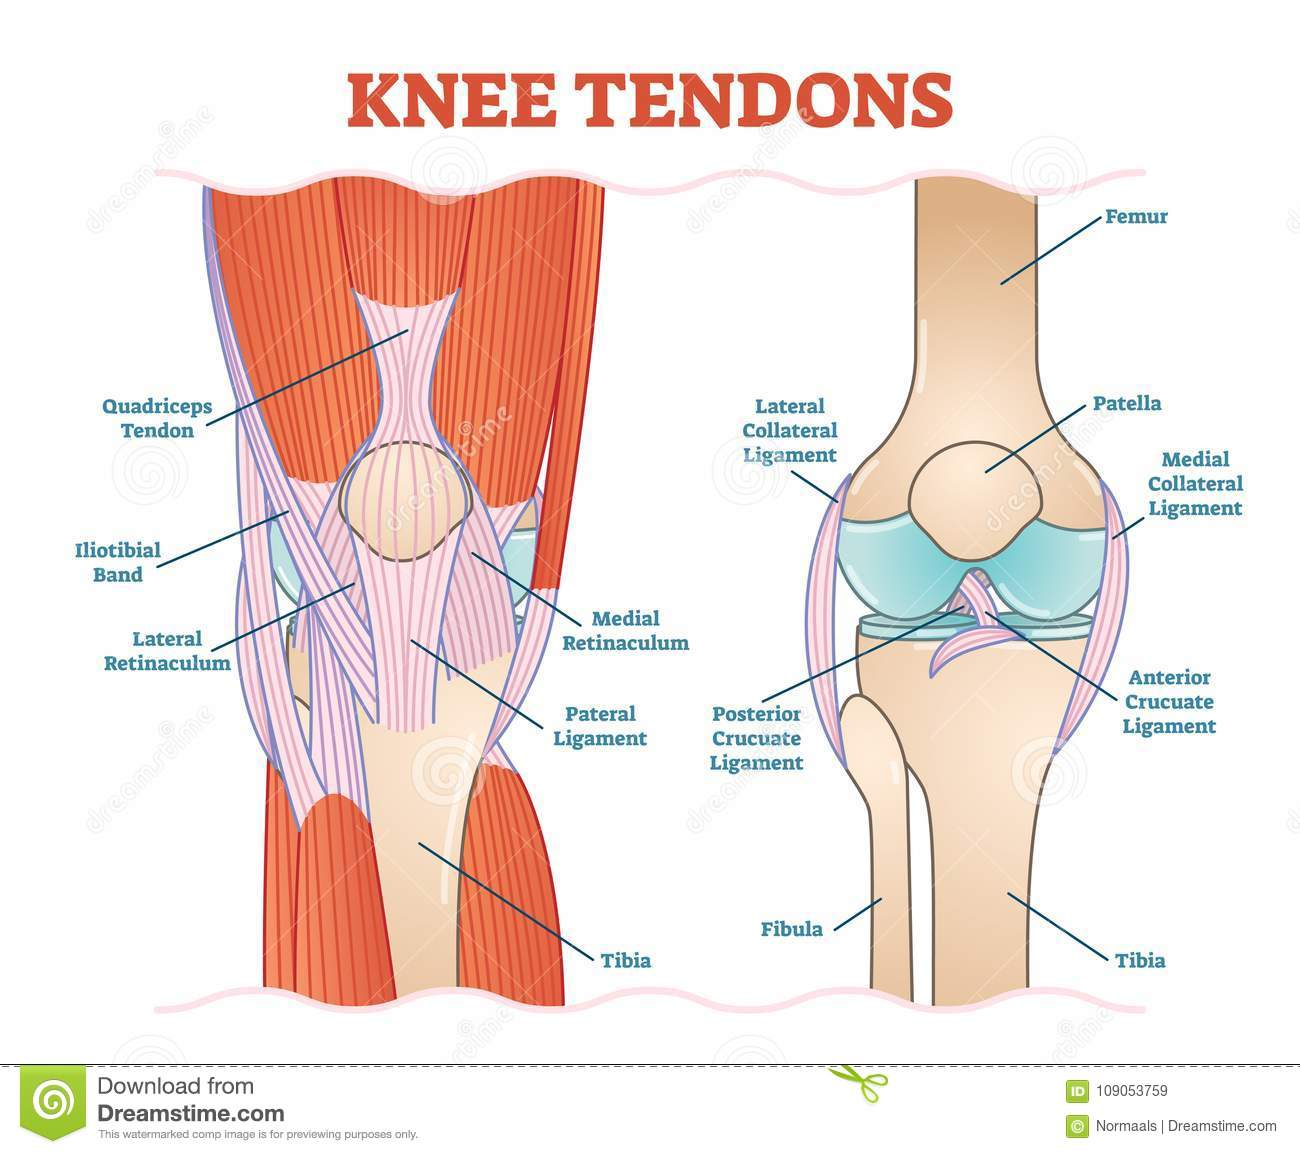 hight resolution of knee tendons medical vector illustration scheme anatomical diagram knee tendon diagram knee tendon diagram